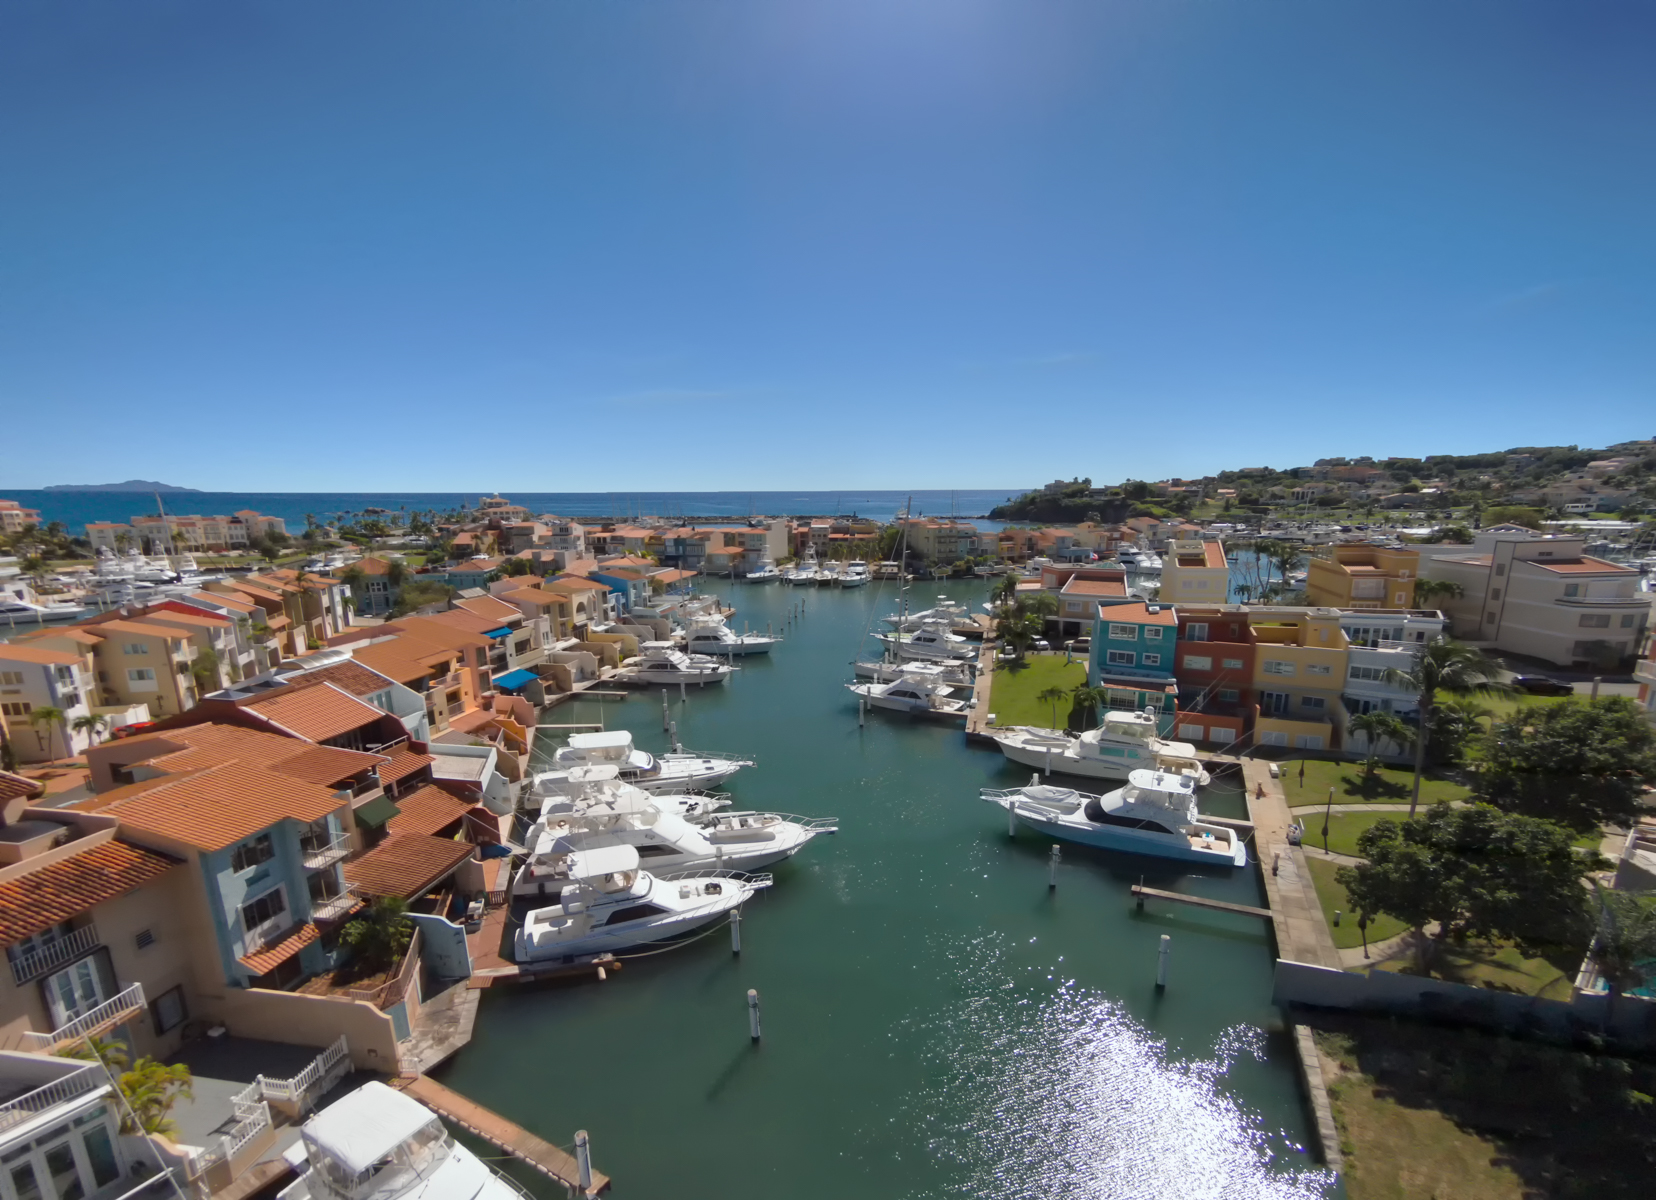 Additional photo for property listing at Waterfront Lot with Boat Slip in Palmas Del Mar 40 Peninsula de San Juan Palmas Del Mar Palmas Del Mar, 00791 푸에르토리코